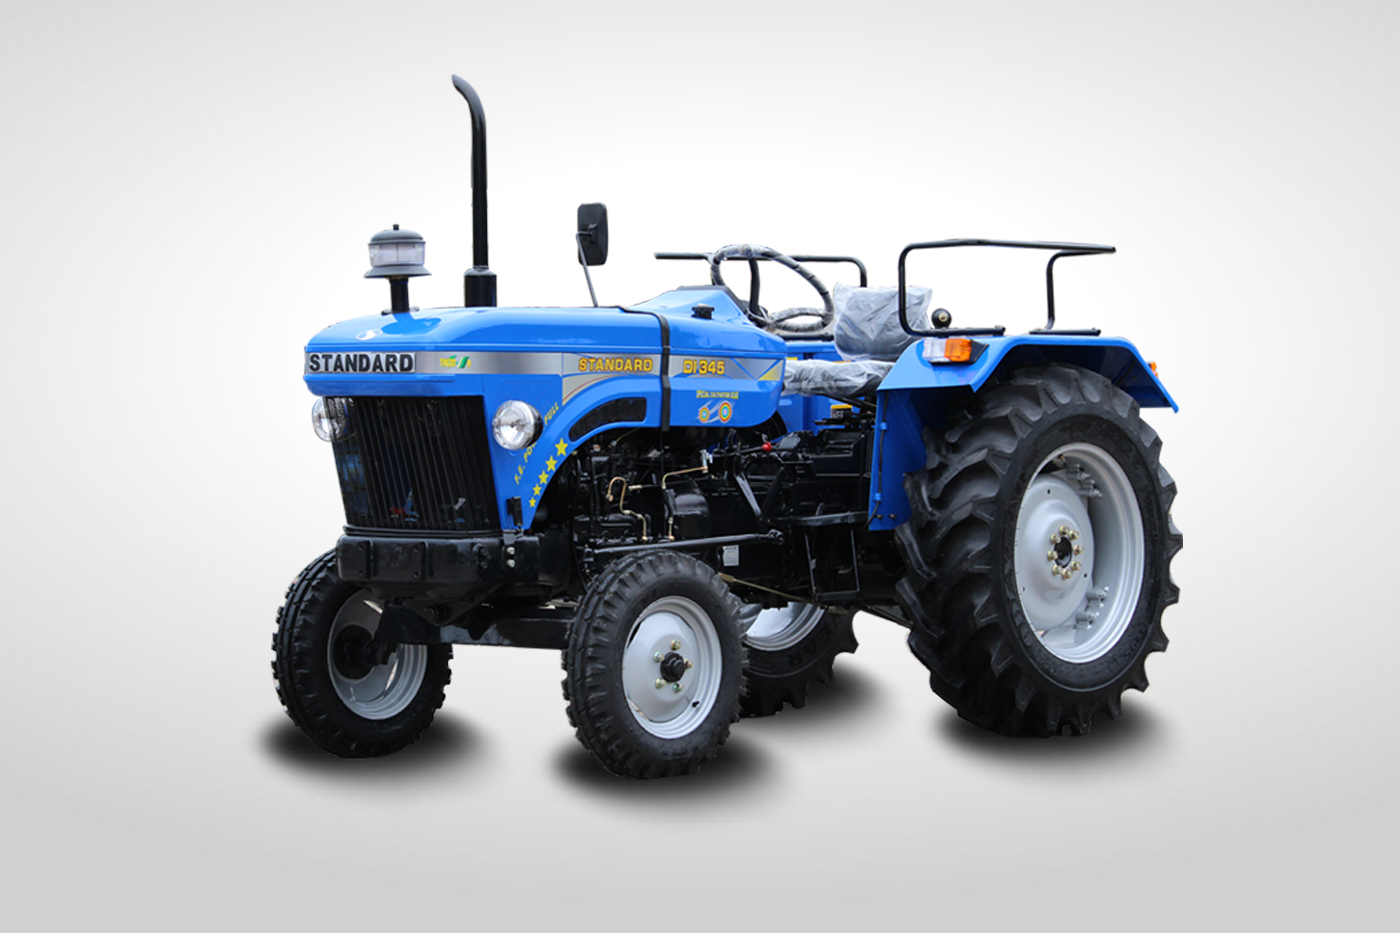 https://images.tractorgyan.com/uploads/361/standard-DI-345-tractorgyan.png